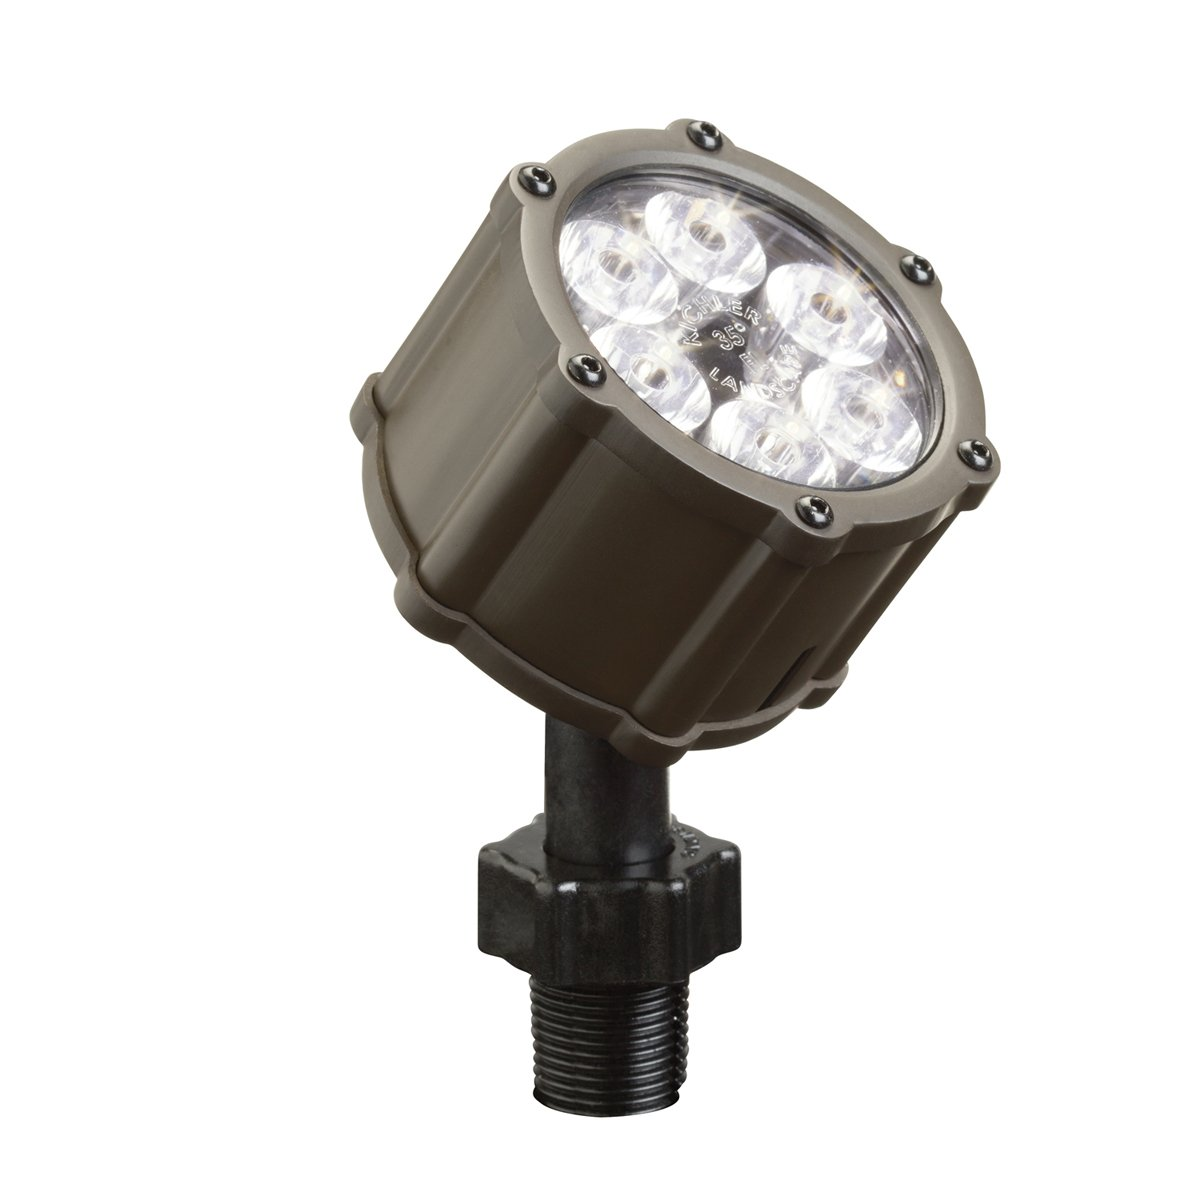 Kichler lighting 15742azt led accent light 6 light low voltage 35 kichler lighting 15742azt led accent light 6 light low voltage 35 degree flood light textured architectural bronze with clear tempered glass lens mozeypictures Image collections